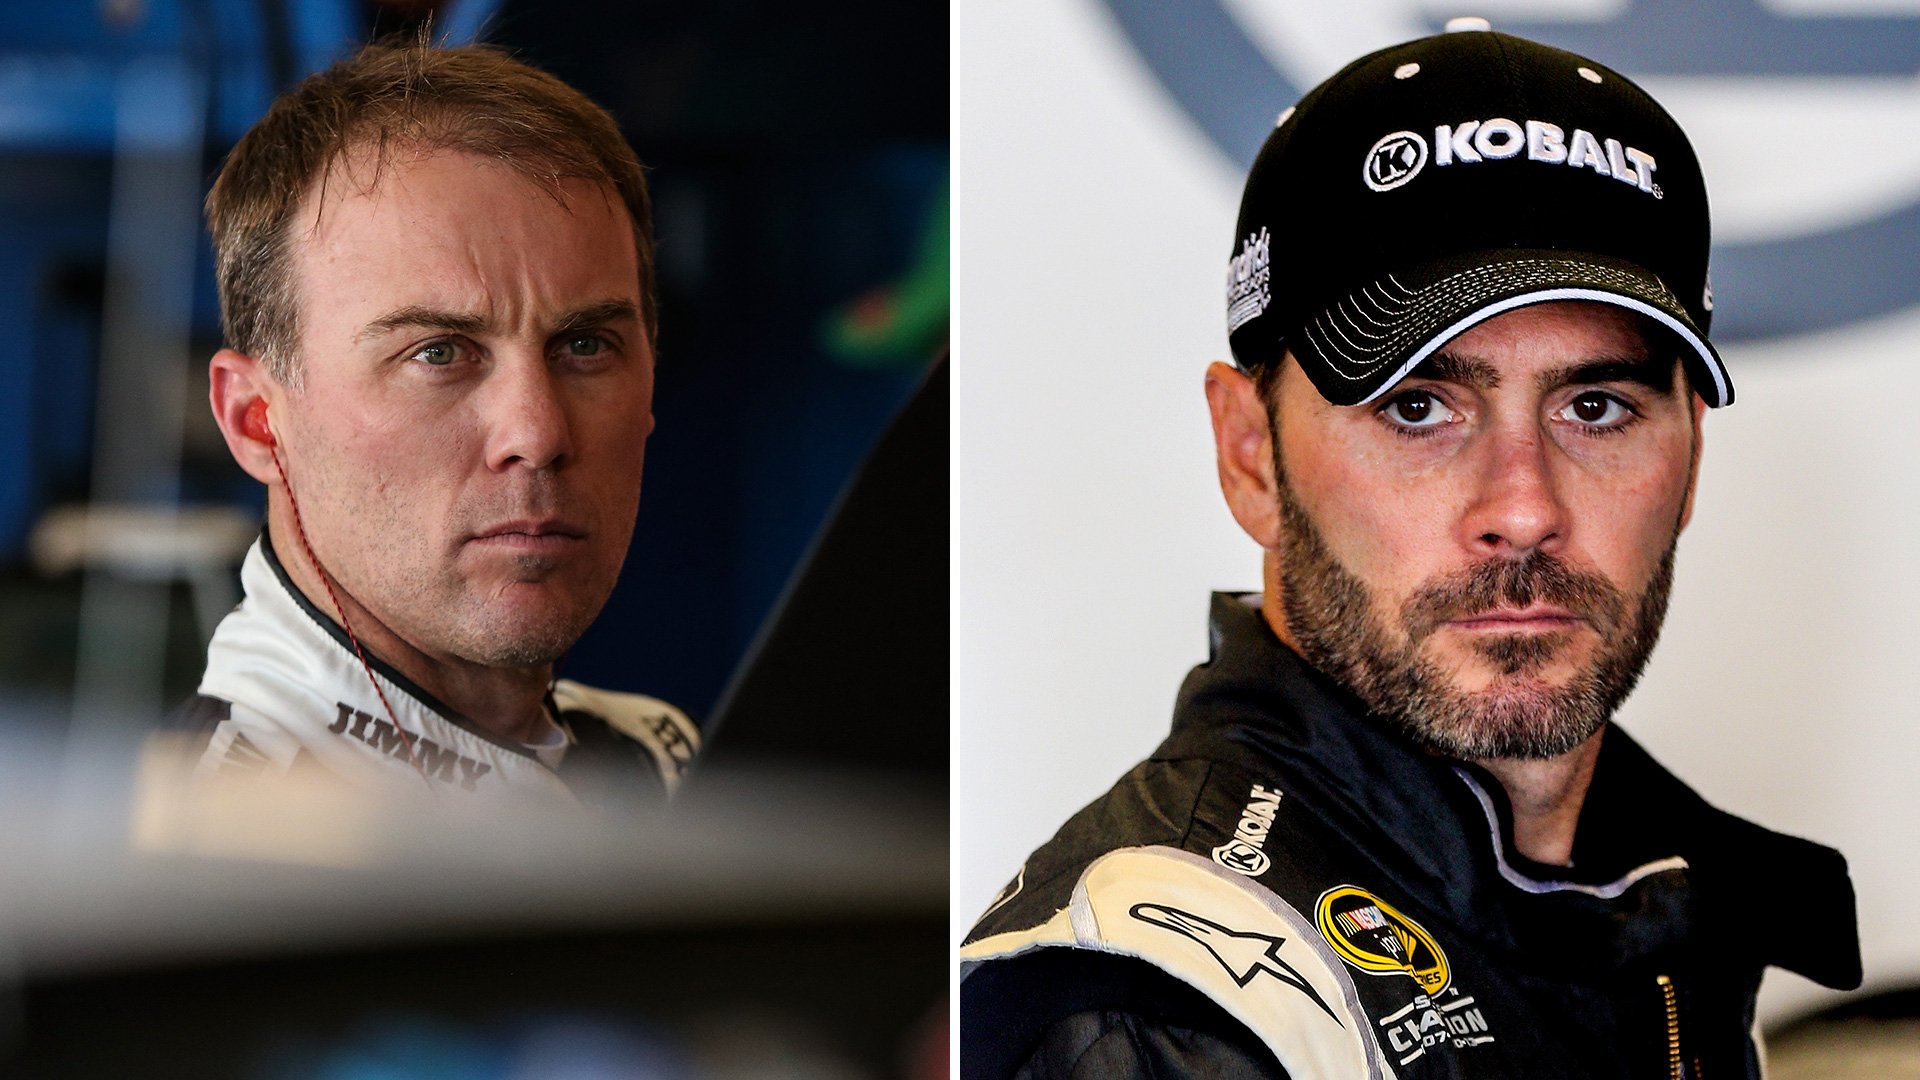 NASCAR odds and driver ratings – Harvick, Johnson top Dover list